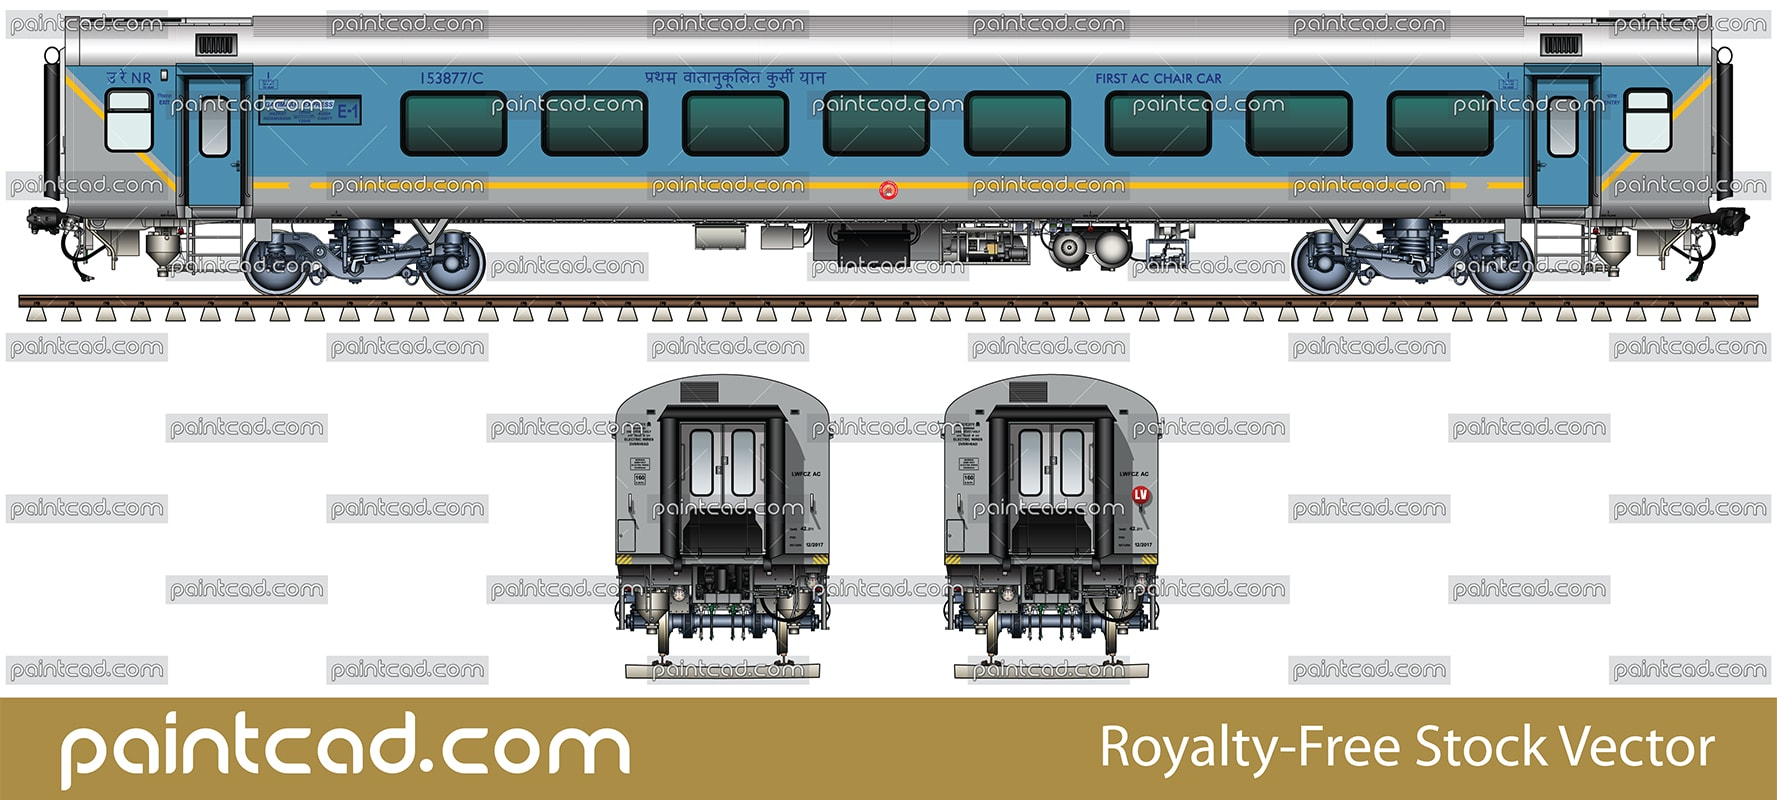 Executive first AC chair car in livery of Gatimaan Express - vector illustration